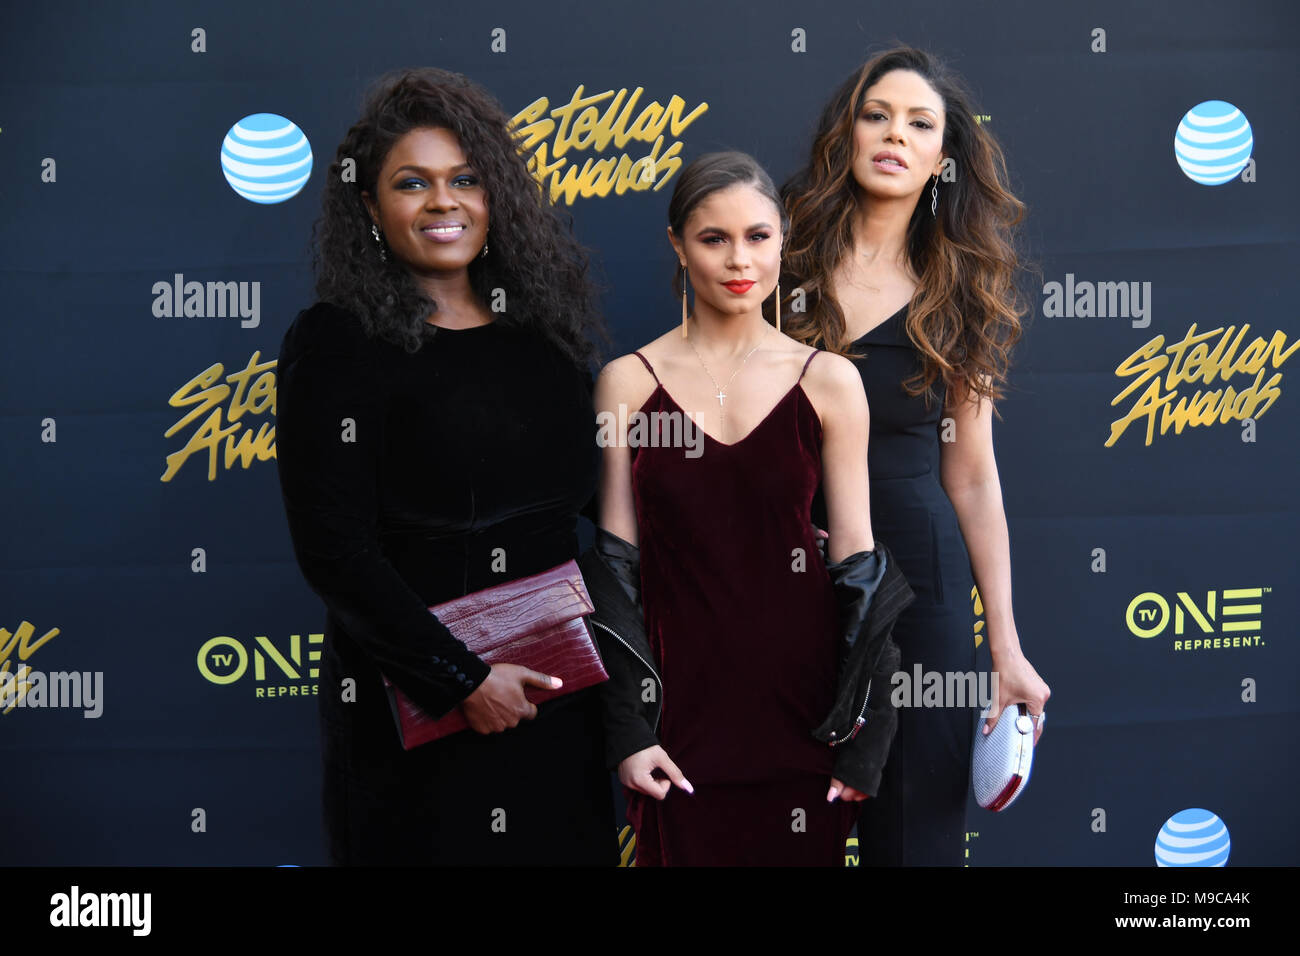 Las Vegas, NV, USA, 24 Mar 2018. Green leaf cast walks the red carpet at the 33rd Annual Stellar Awards in Las Vegas, Nevada.  Photo Credit:  Marty Jean-Louis - Stock Image